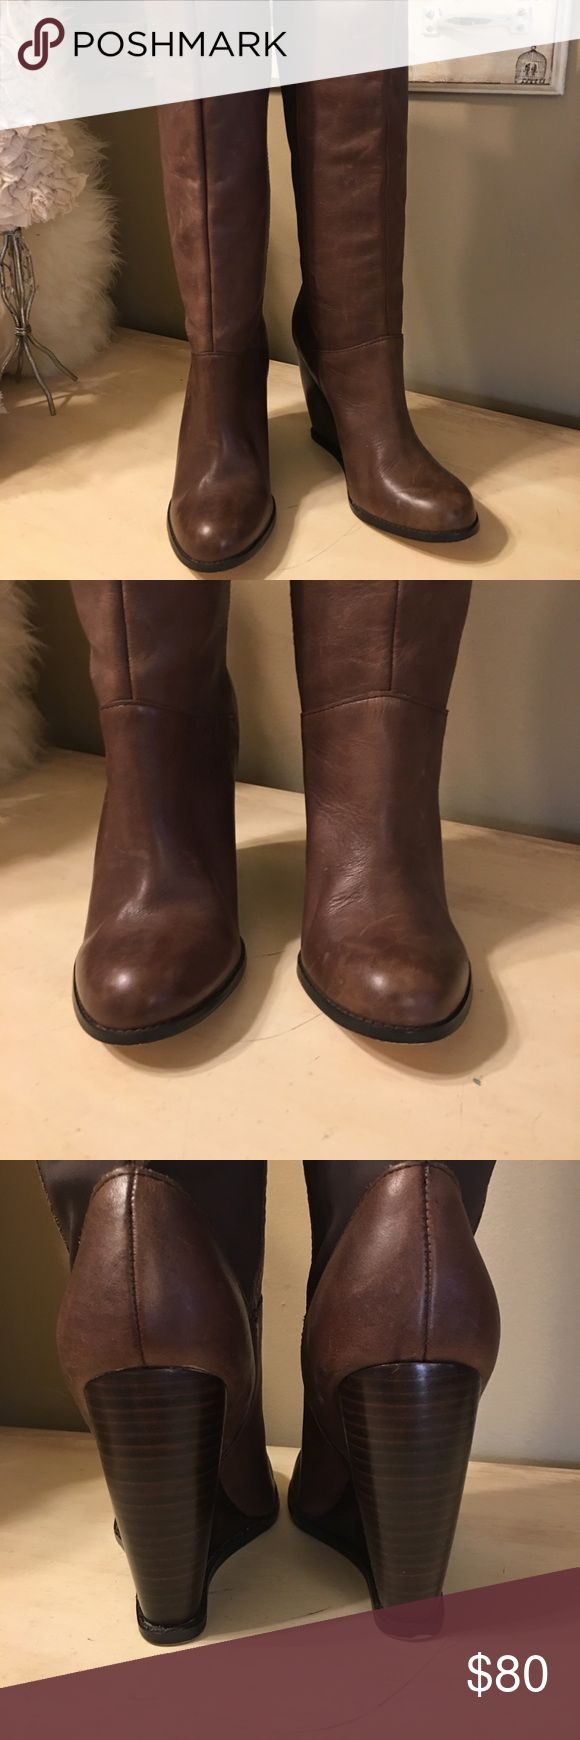 "Seychelles boots Beautiful brown leather distressed Seychelles boots. Bought them and wore them for a few hours. Not my style. They are slide on, back is a very sturdy nylon material, the rest is leather. Heel is 4"" and shaft is about 14"". Platform heel. In excellent condition. Seychelles Shoes Heeled Boots"